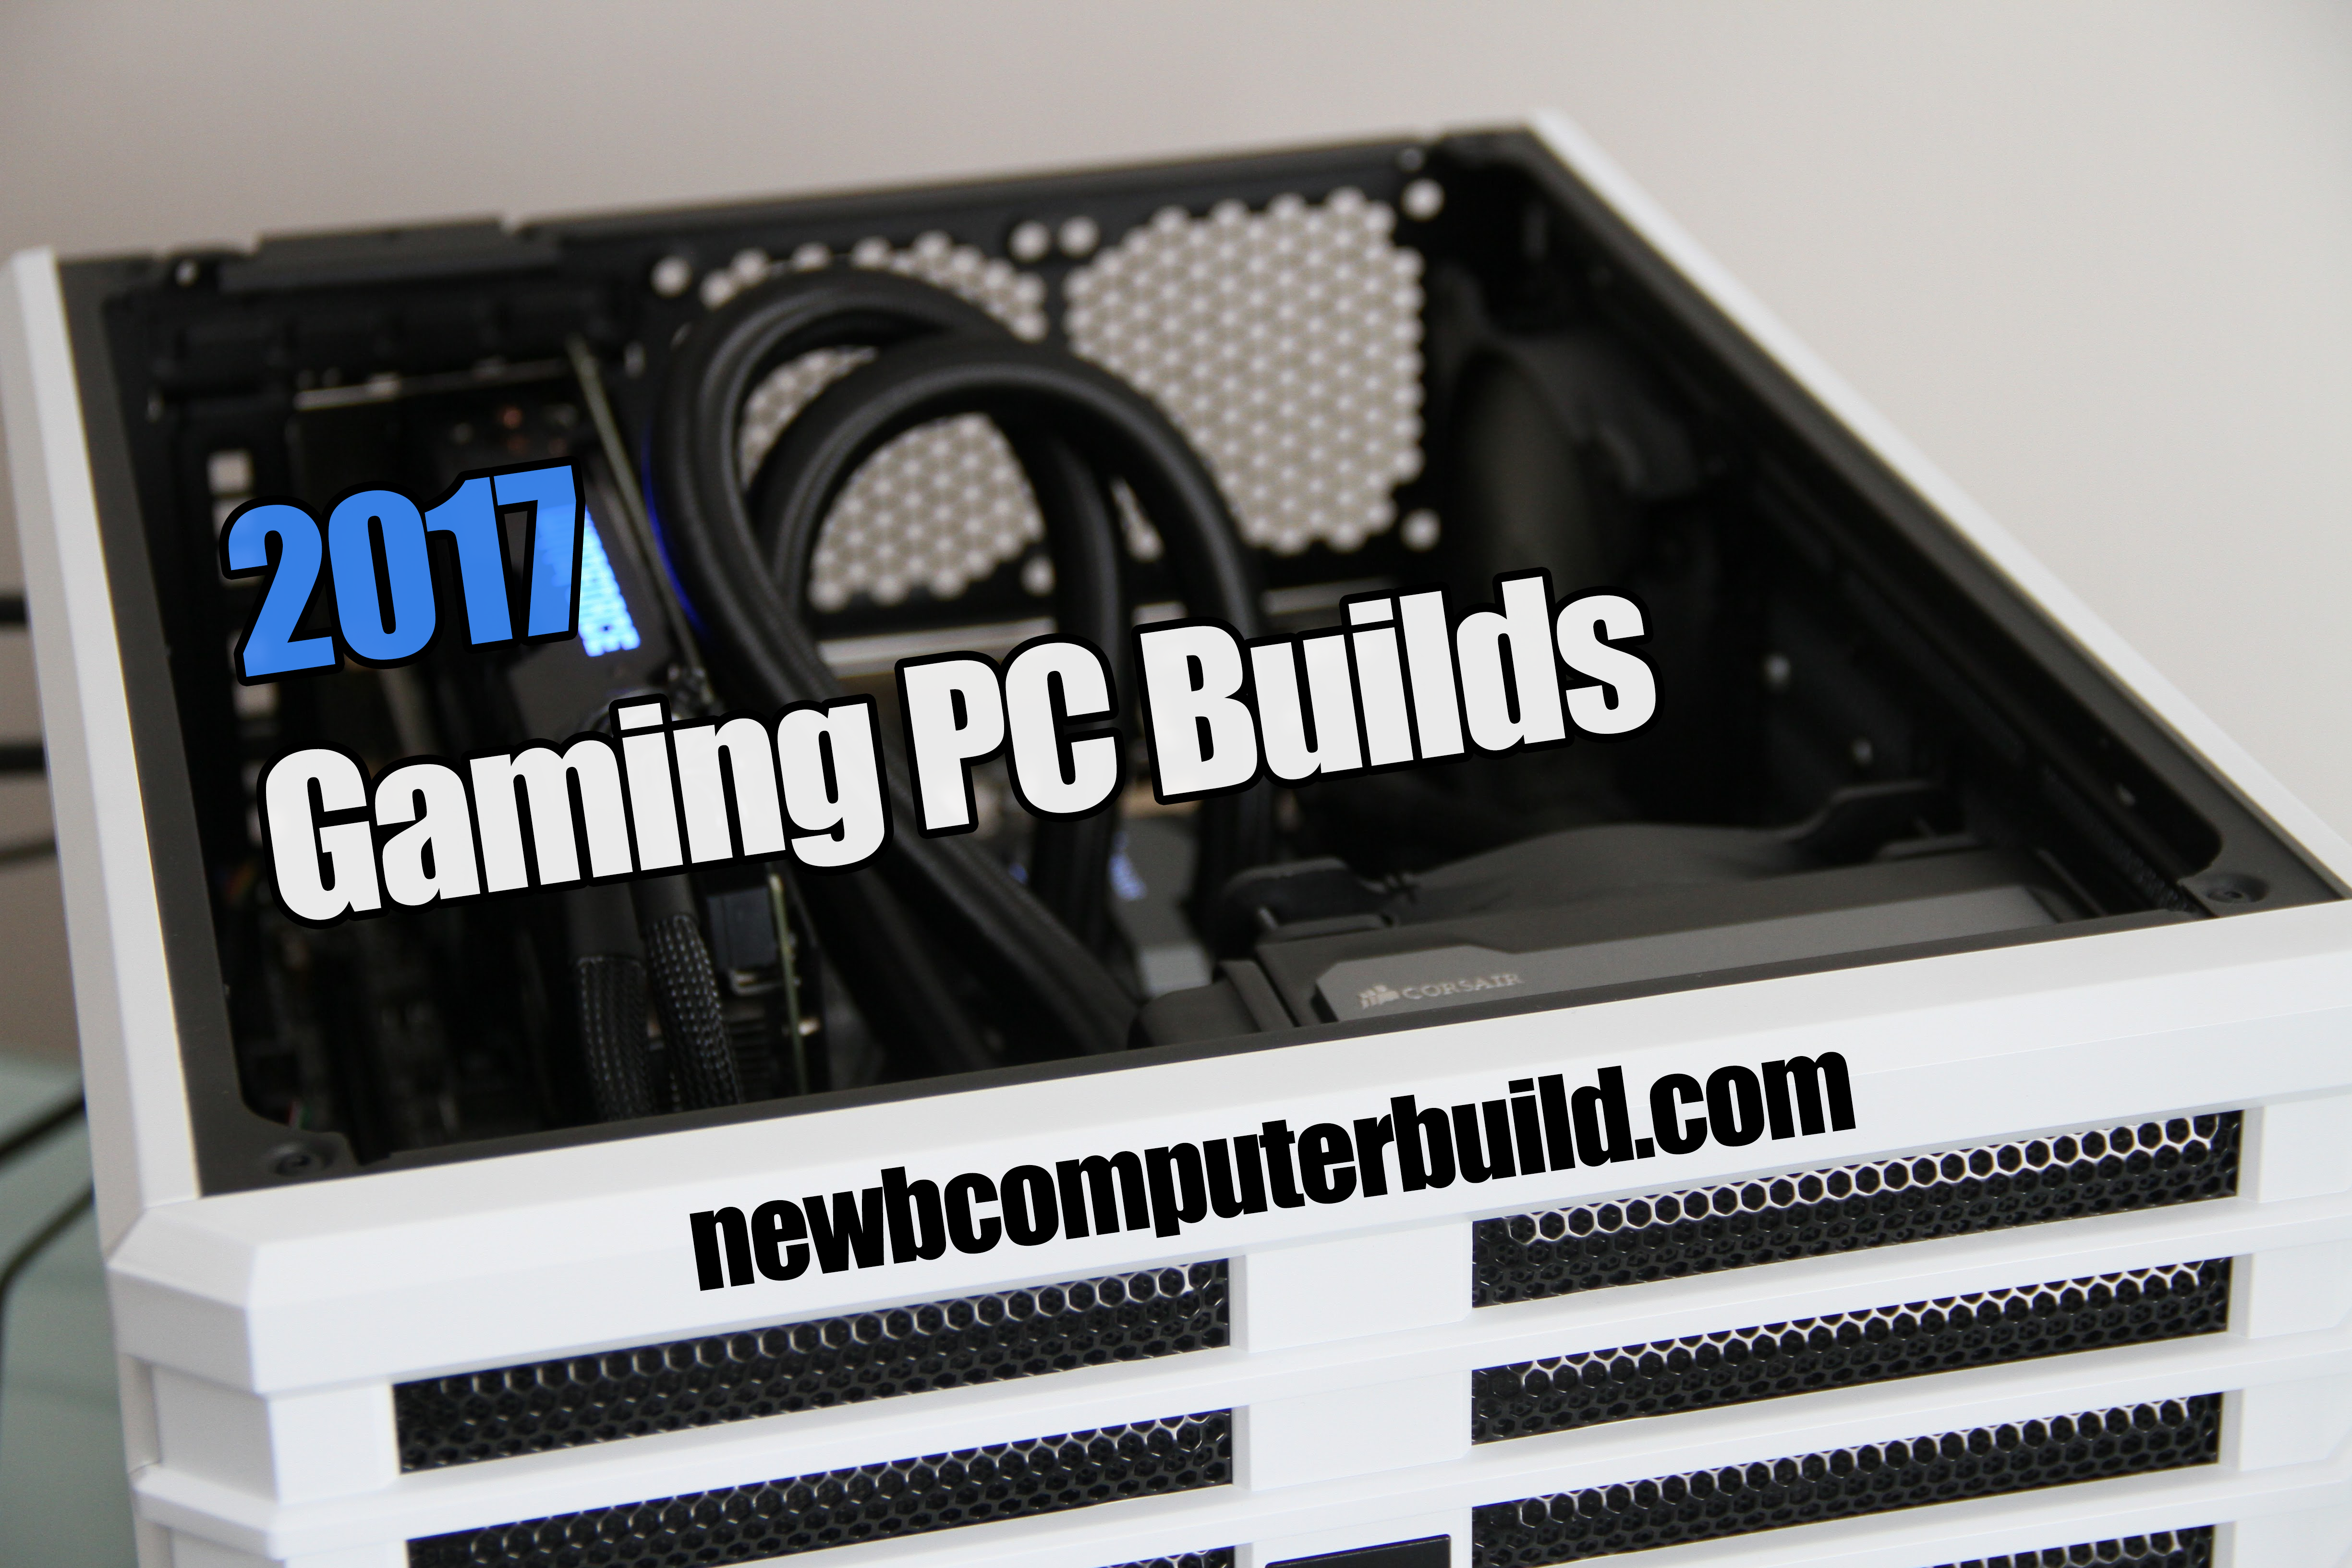 The Best 2017 Gaming PC Builds - Newb Computer Build